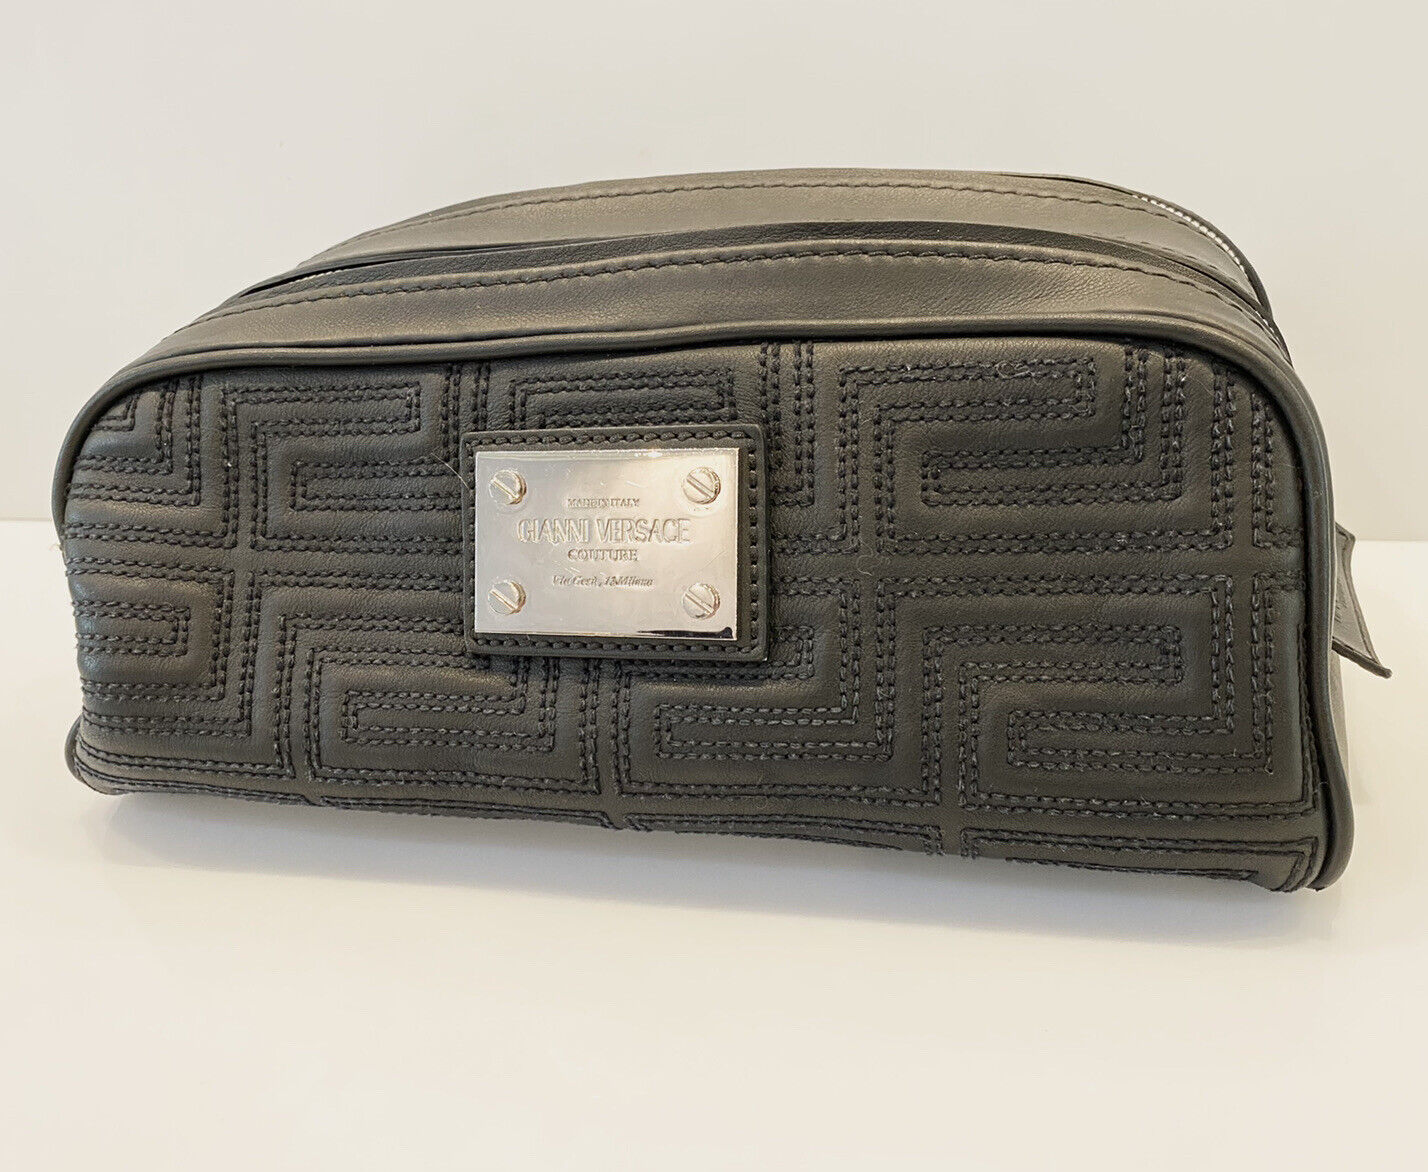 Gianni Versace Couture Quilted Cosmetic Bag Travel Toiletry Handbag Black